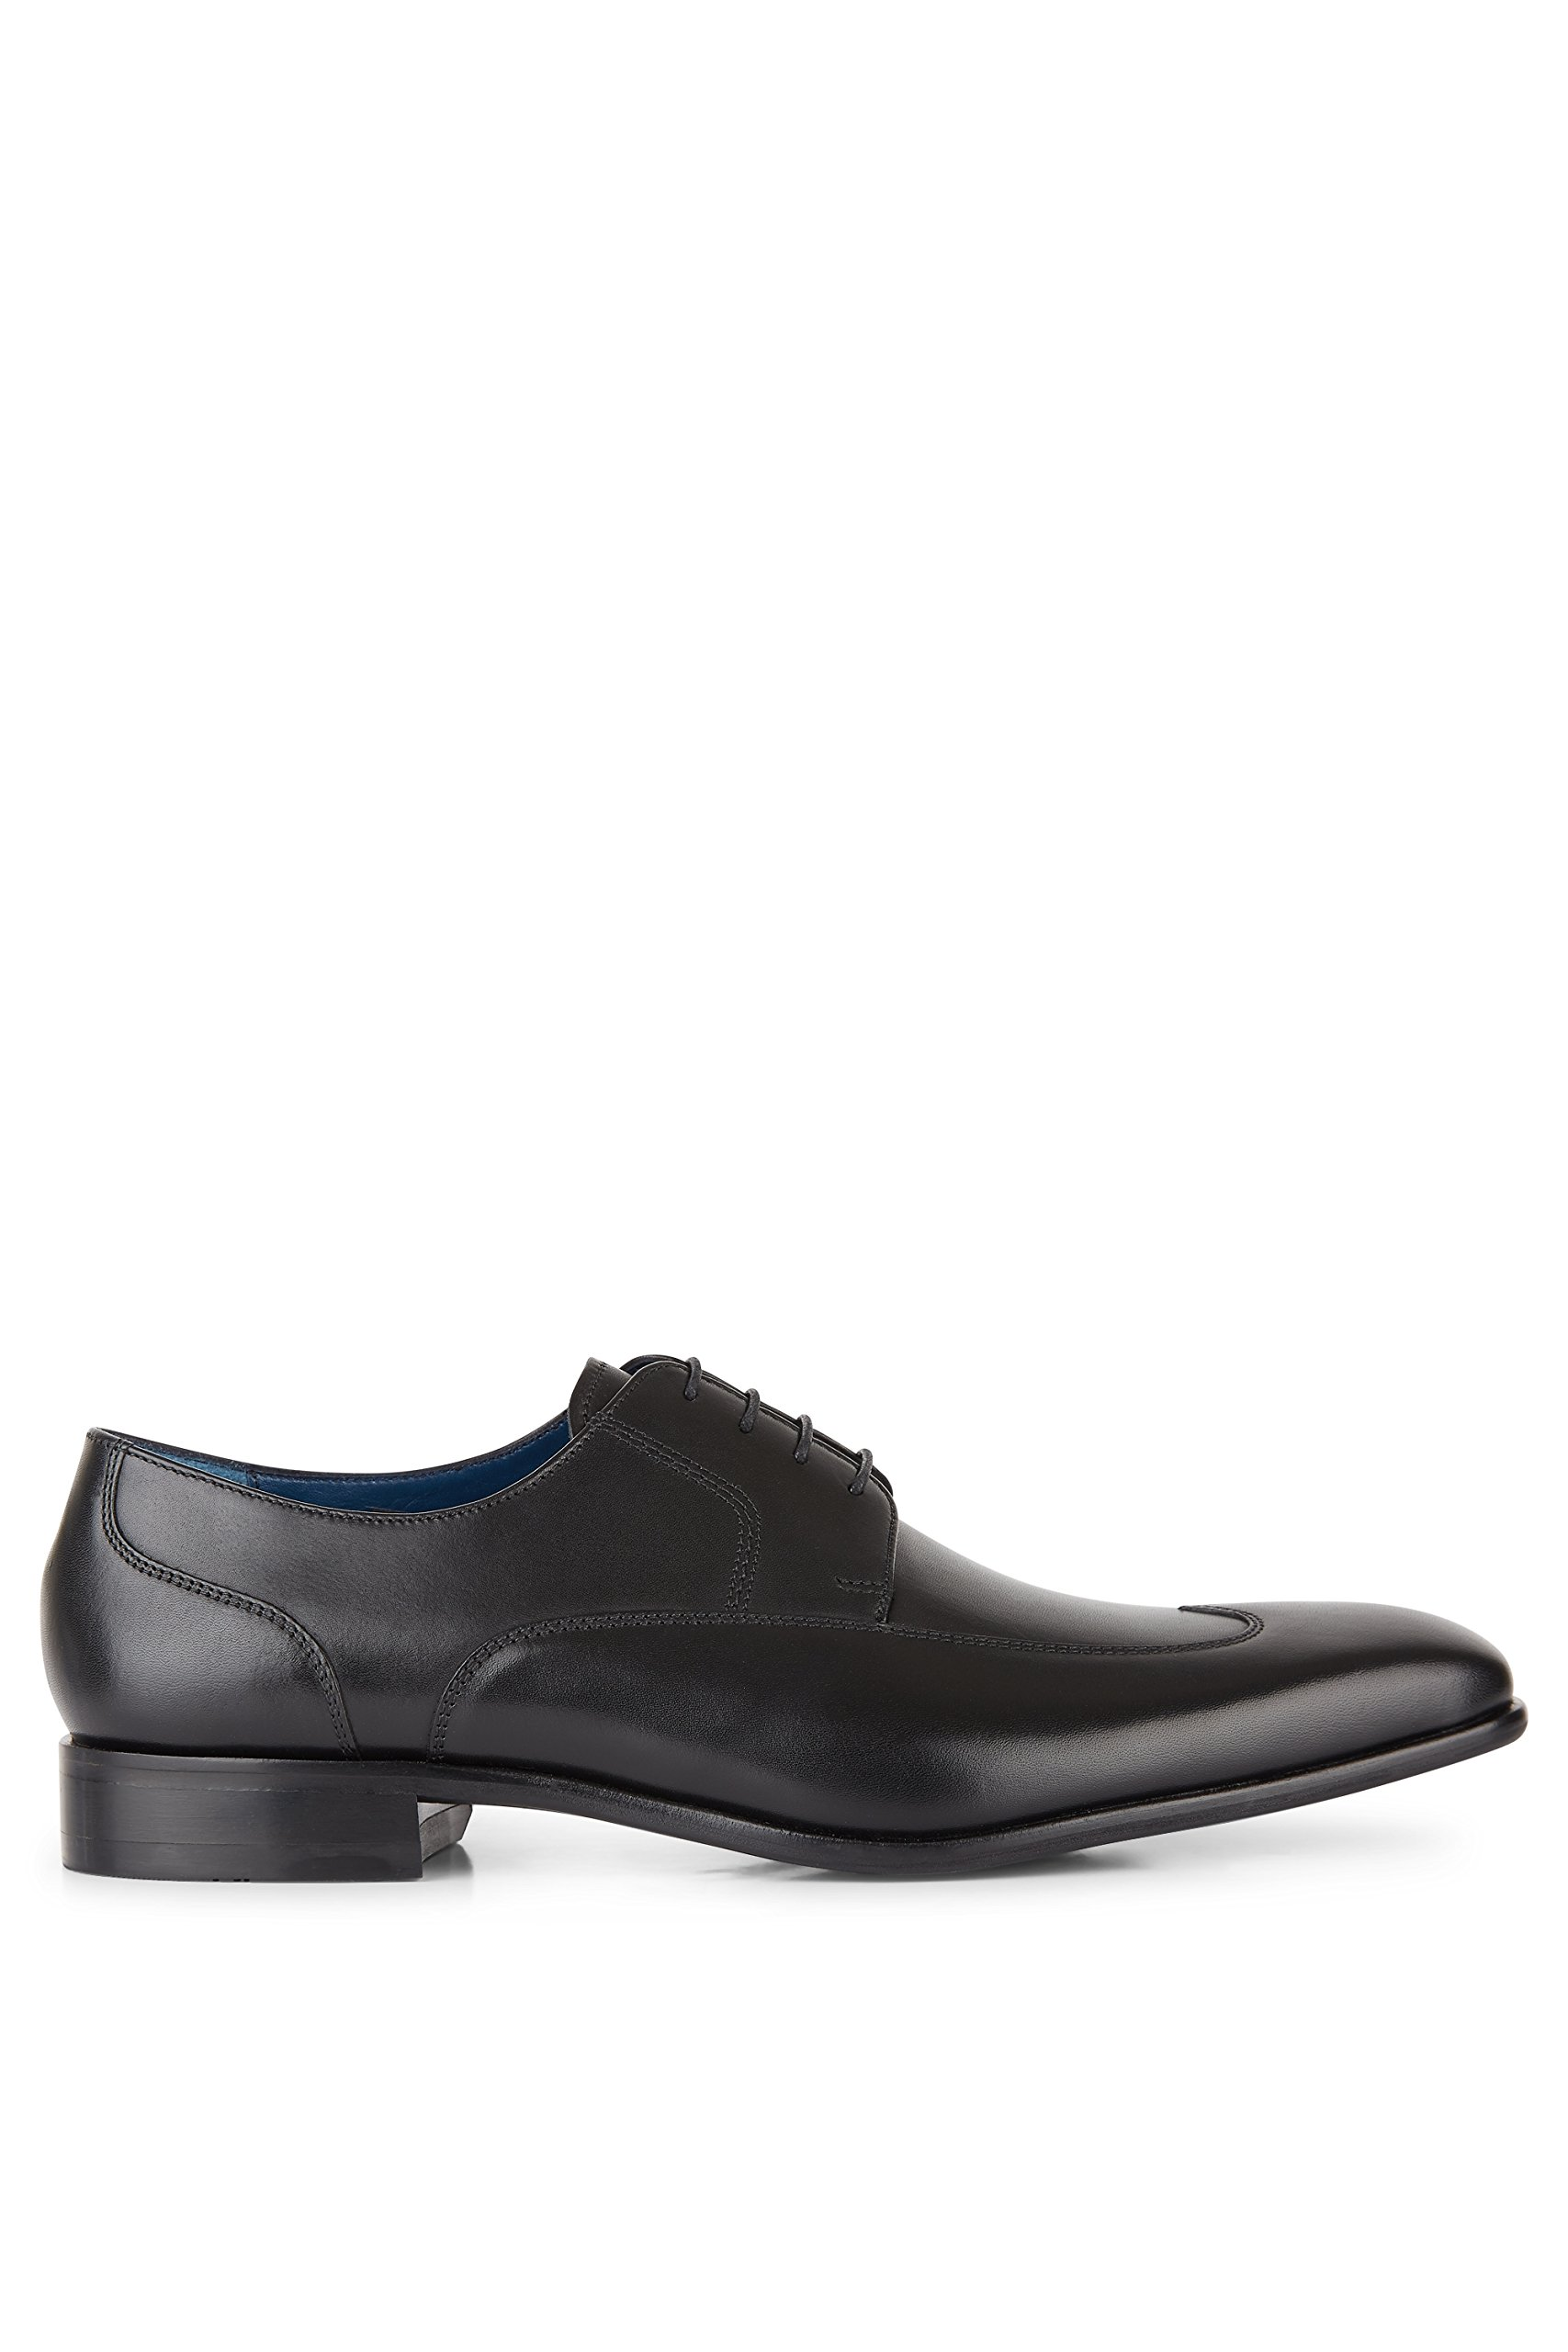 Moss 1851 Men's George Black Wing Tip Derby 12.5 by Moss 1851